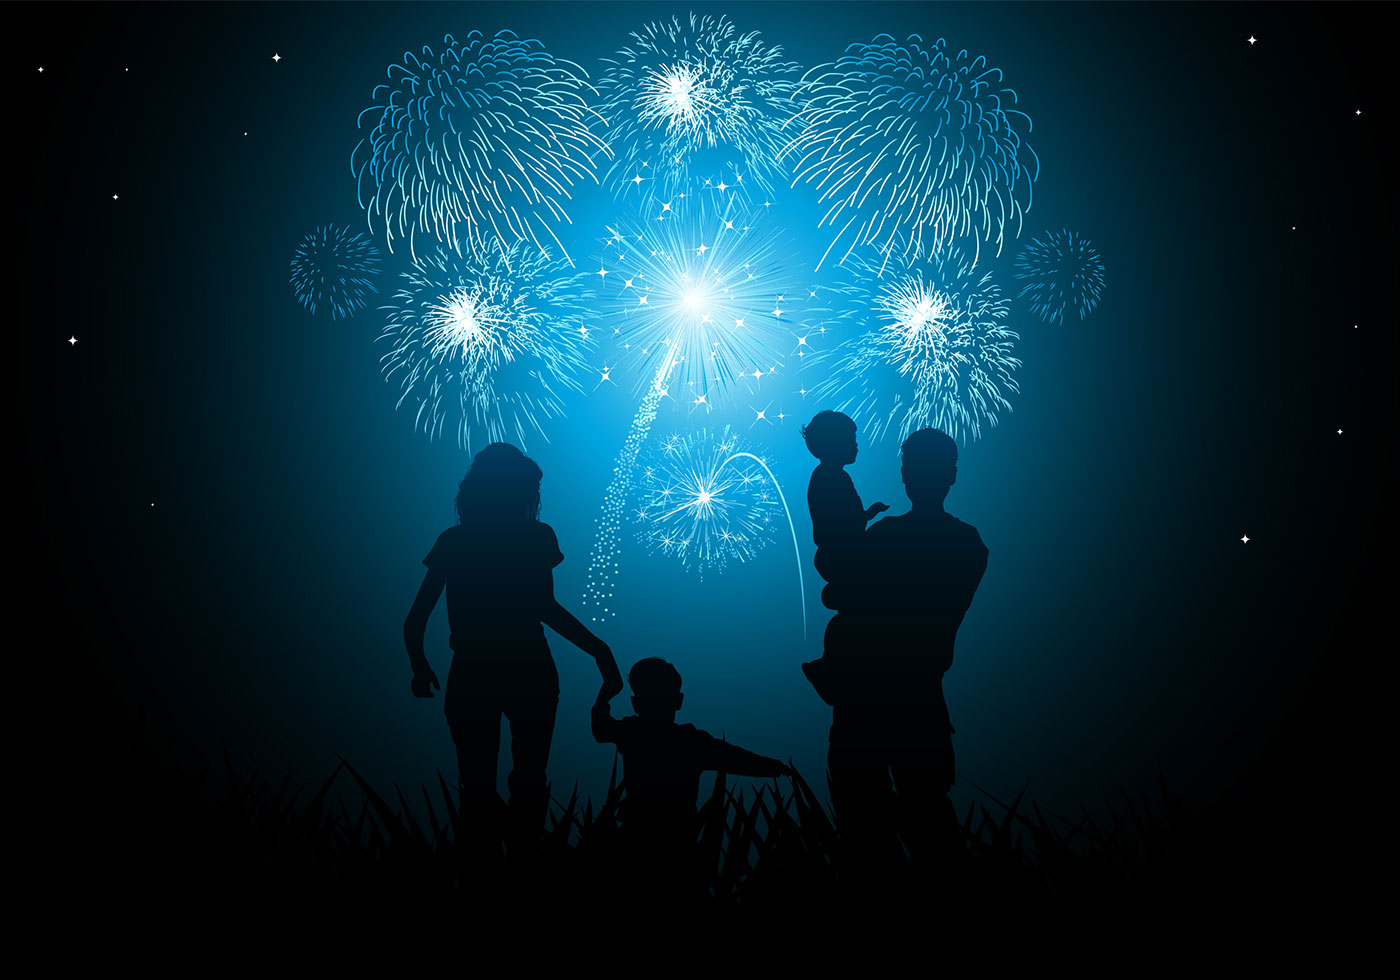 silhouette family watching New Years fireworks